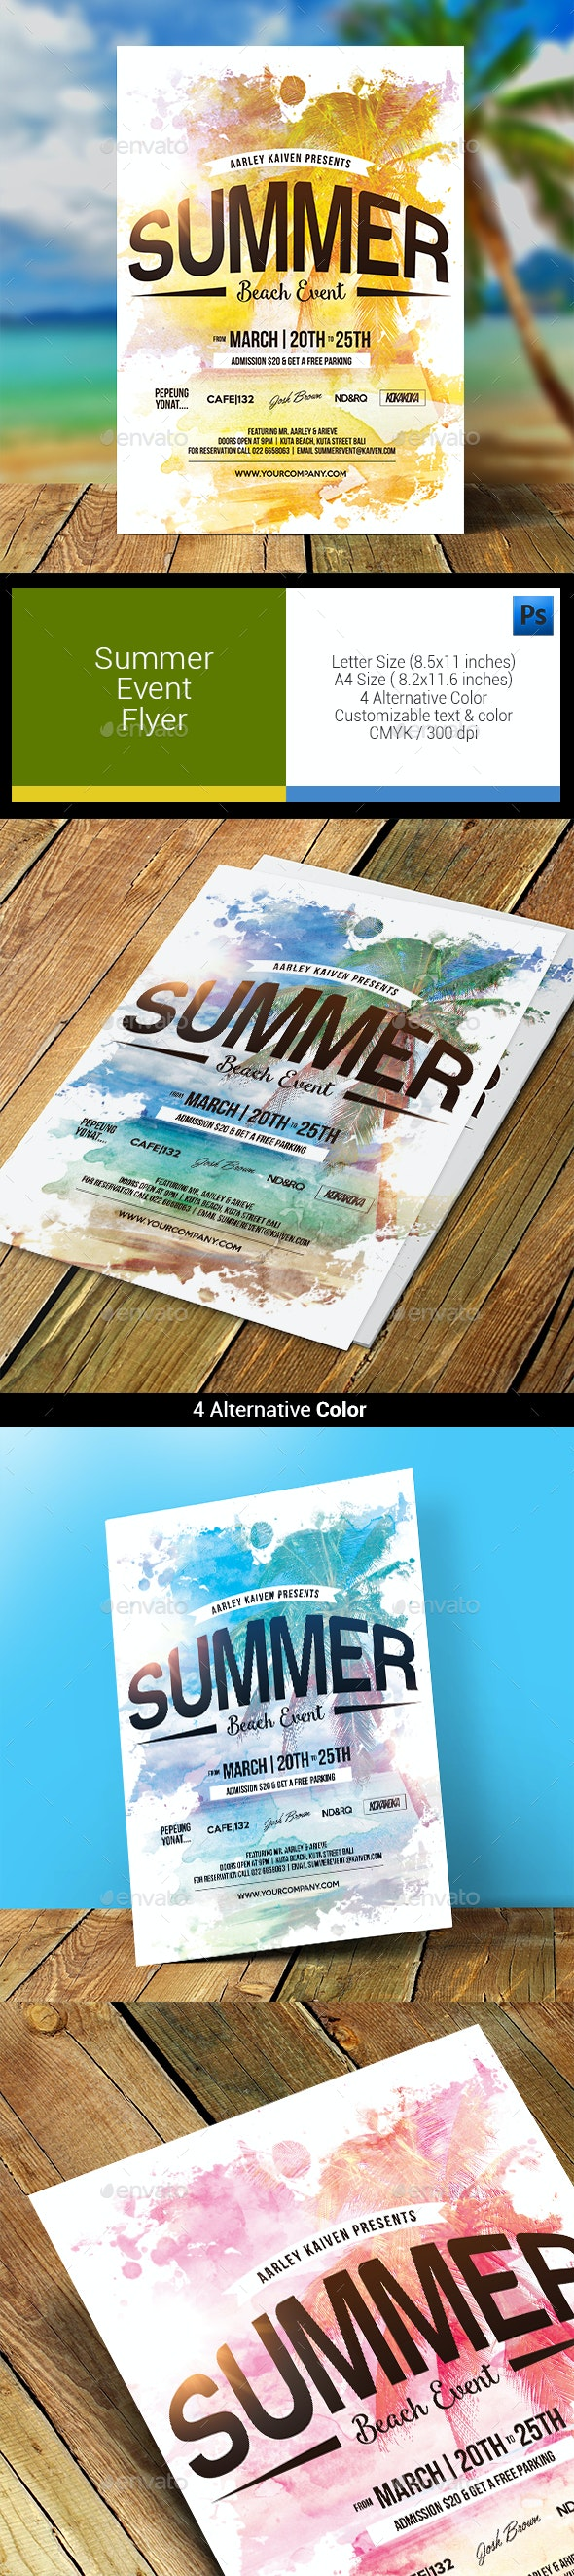 Summer Event Flyer - Clubs & Parties Events